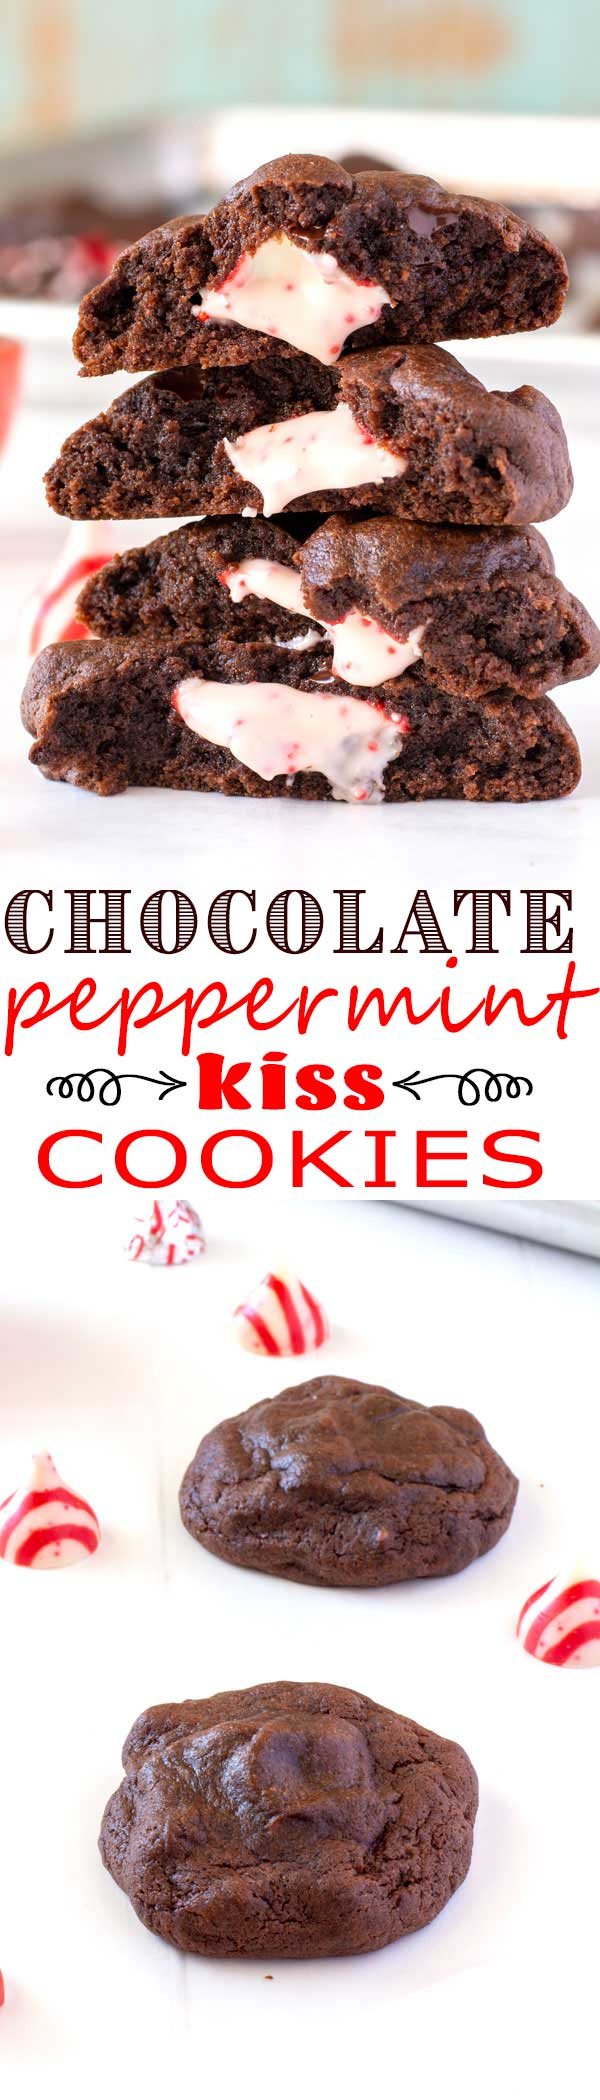 Chocolate Candy Cane Kiss Stuffed Cookies Kitchen Gidget